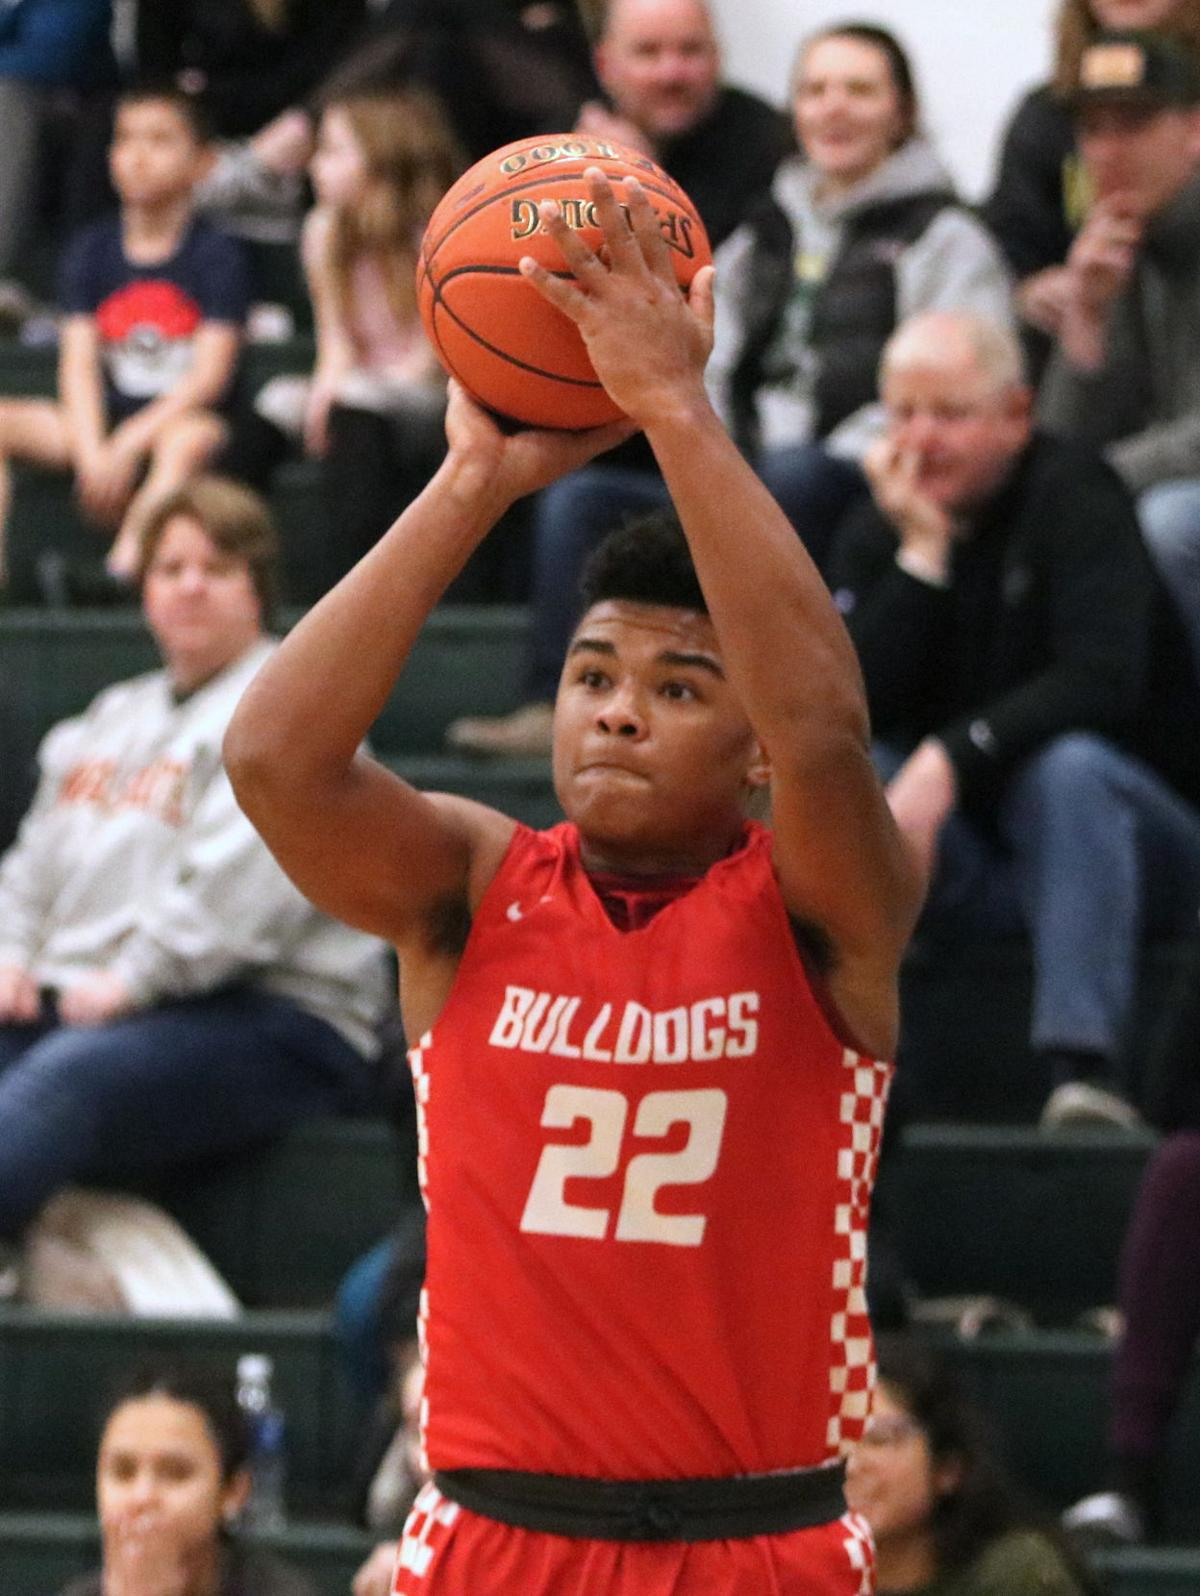 Boys basketball: Swartz, Chance earn all-state honors